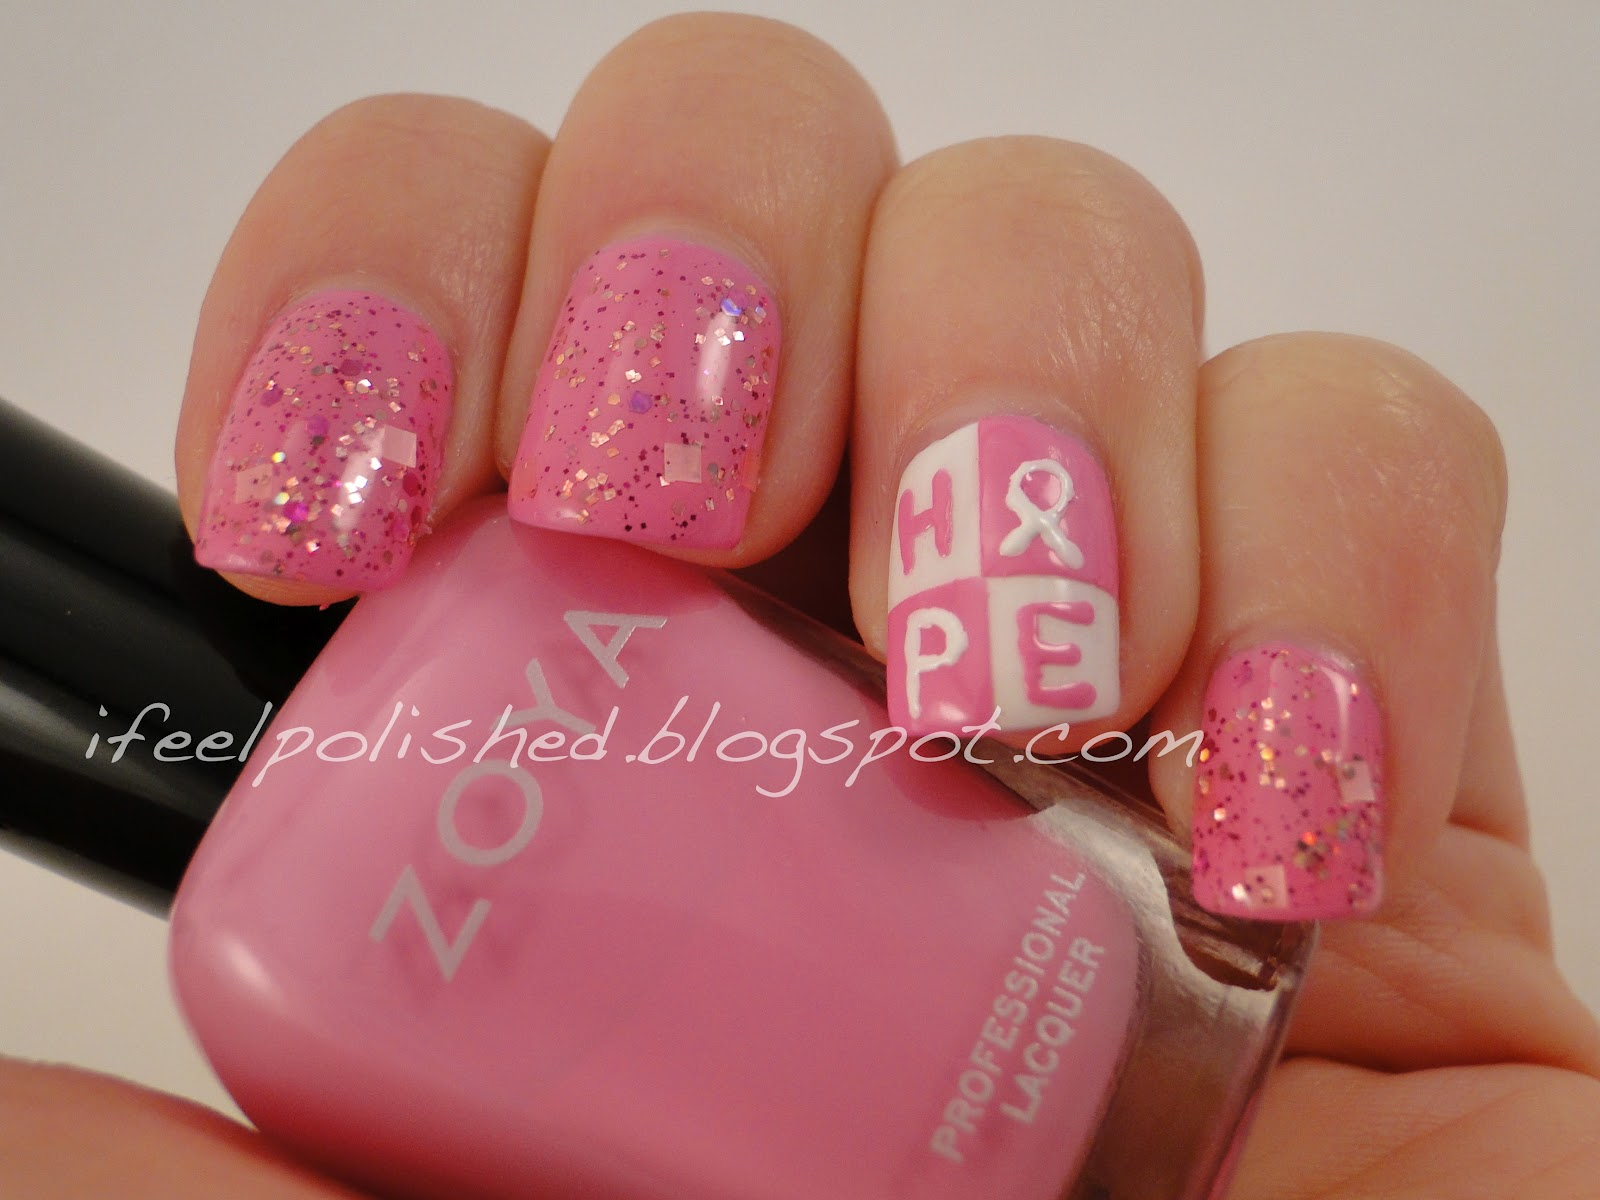 I Feel Polished!: Breast Cancer Awareness Nails: Take Two